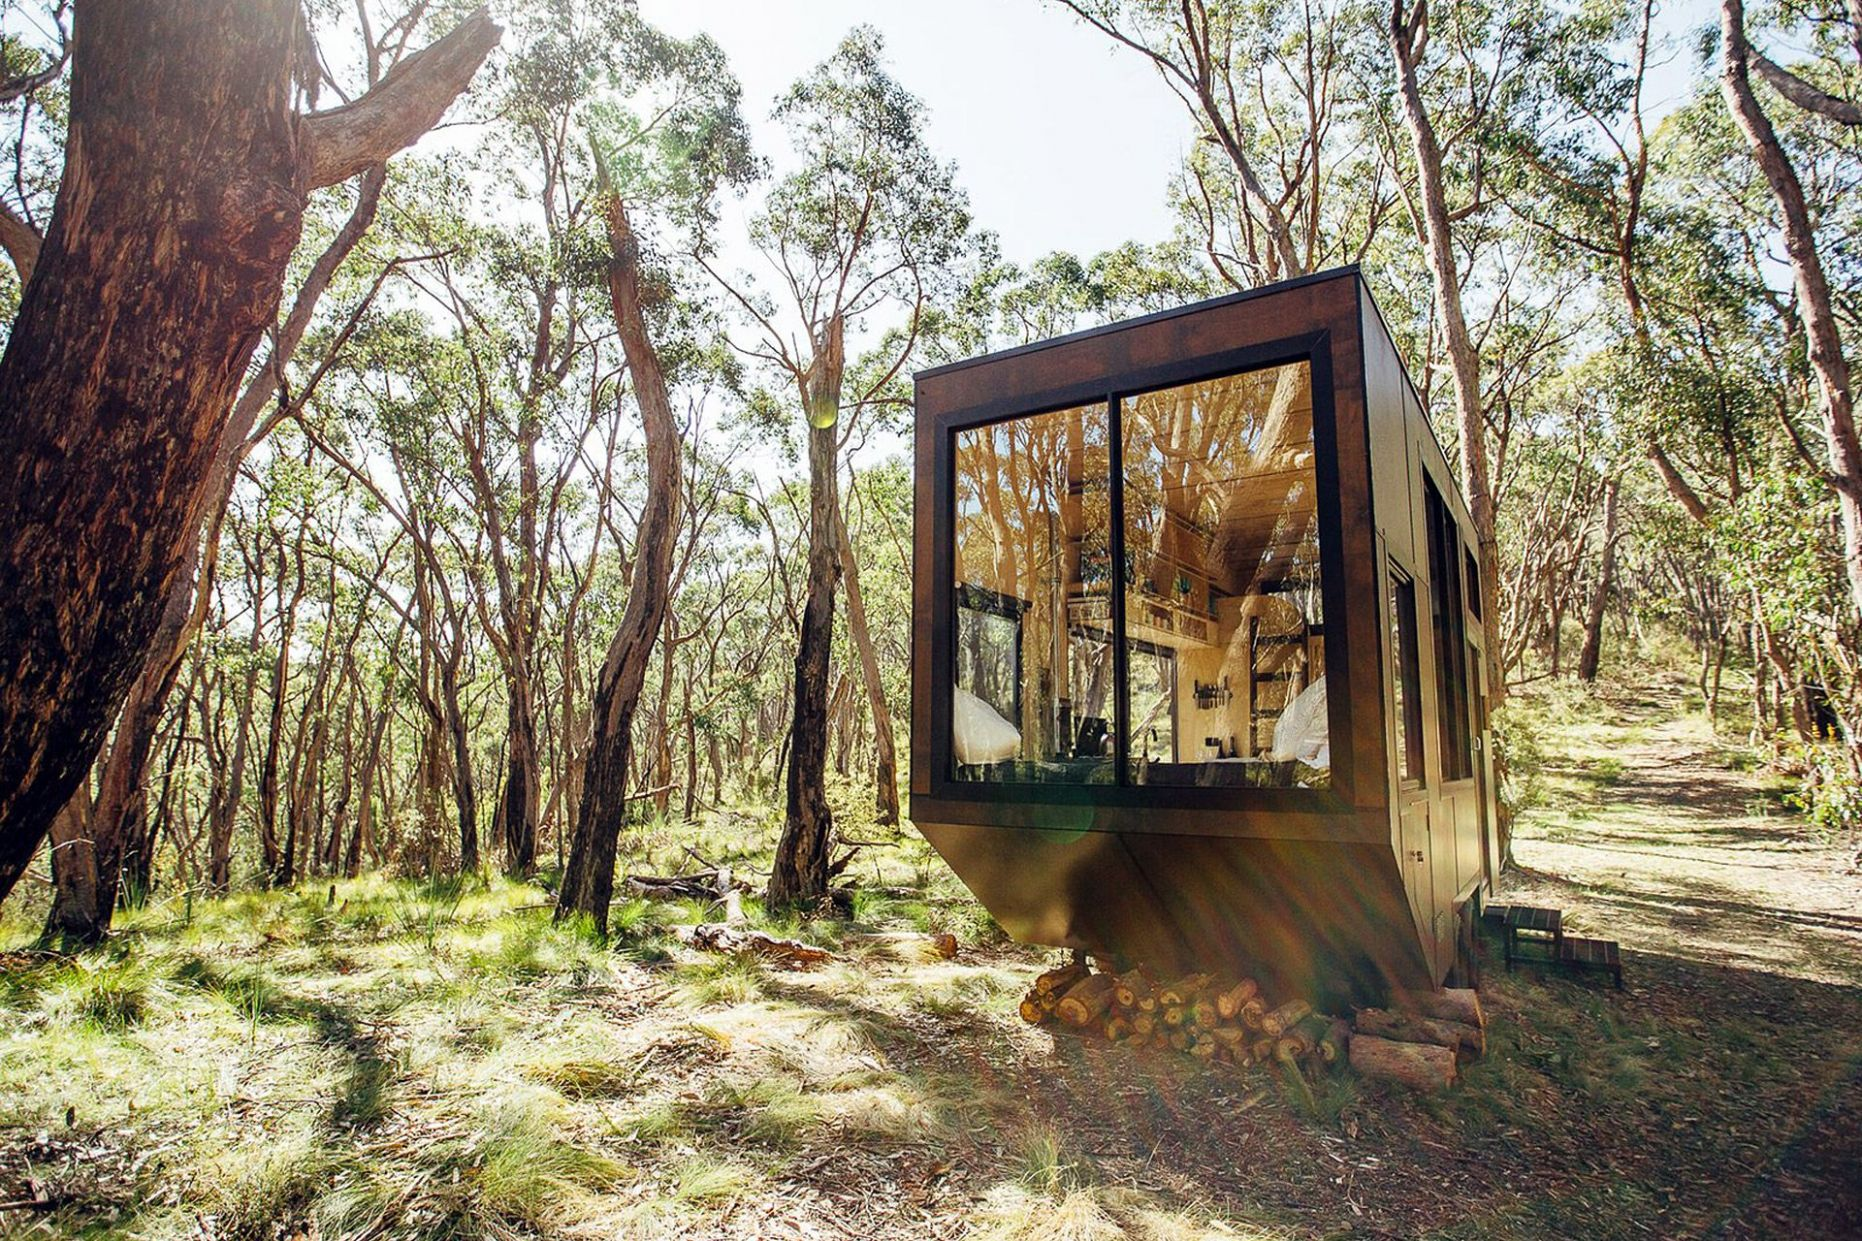 Cabn Adelaide Hills Cabin | Off grid tiny house, Tiny house design ...